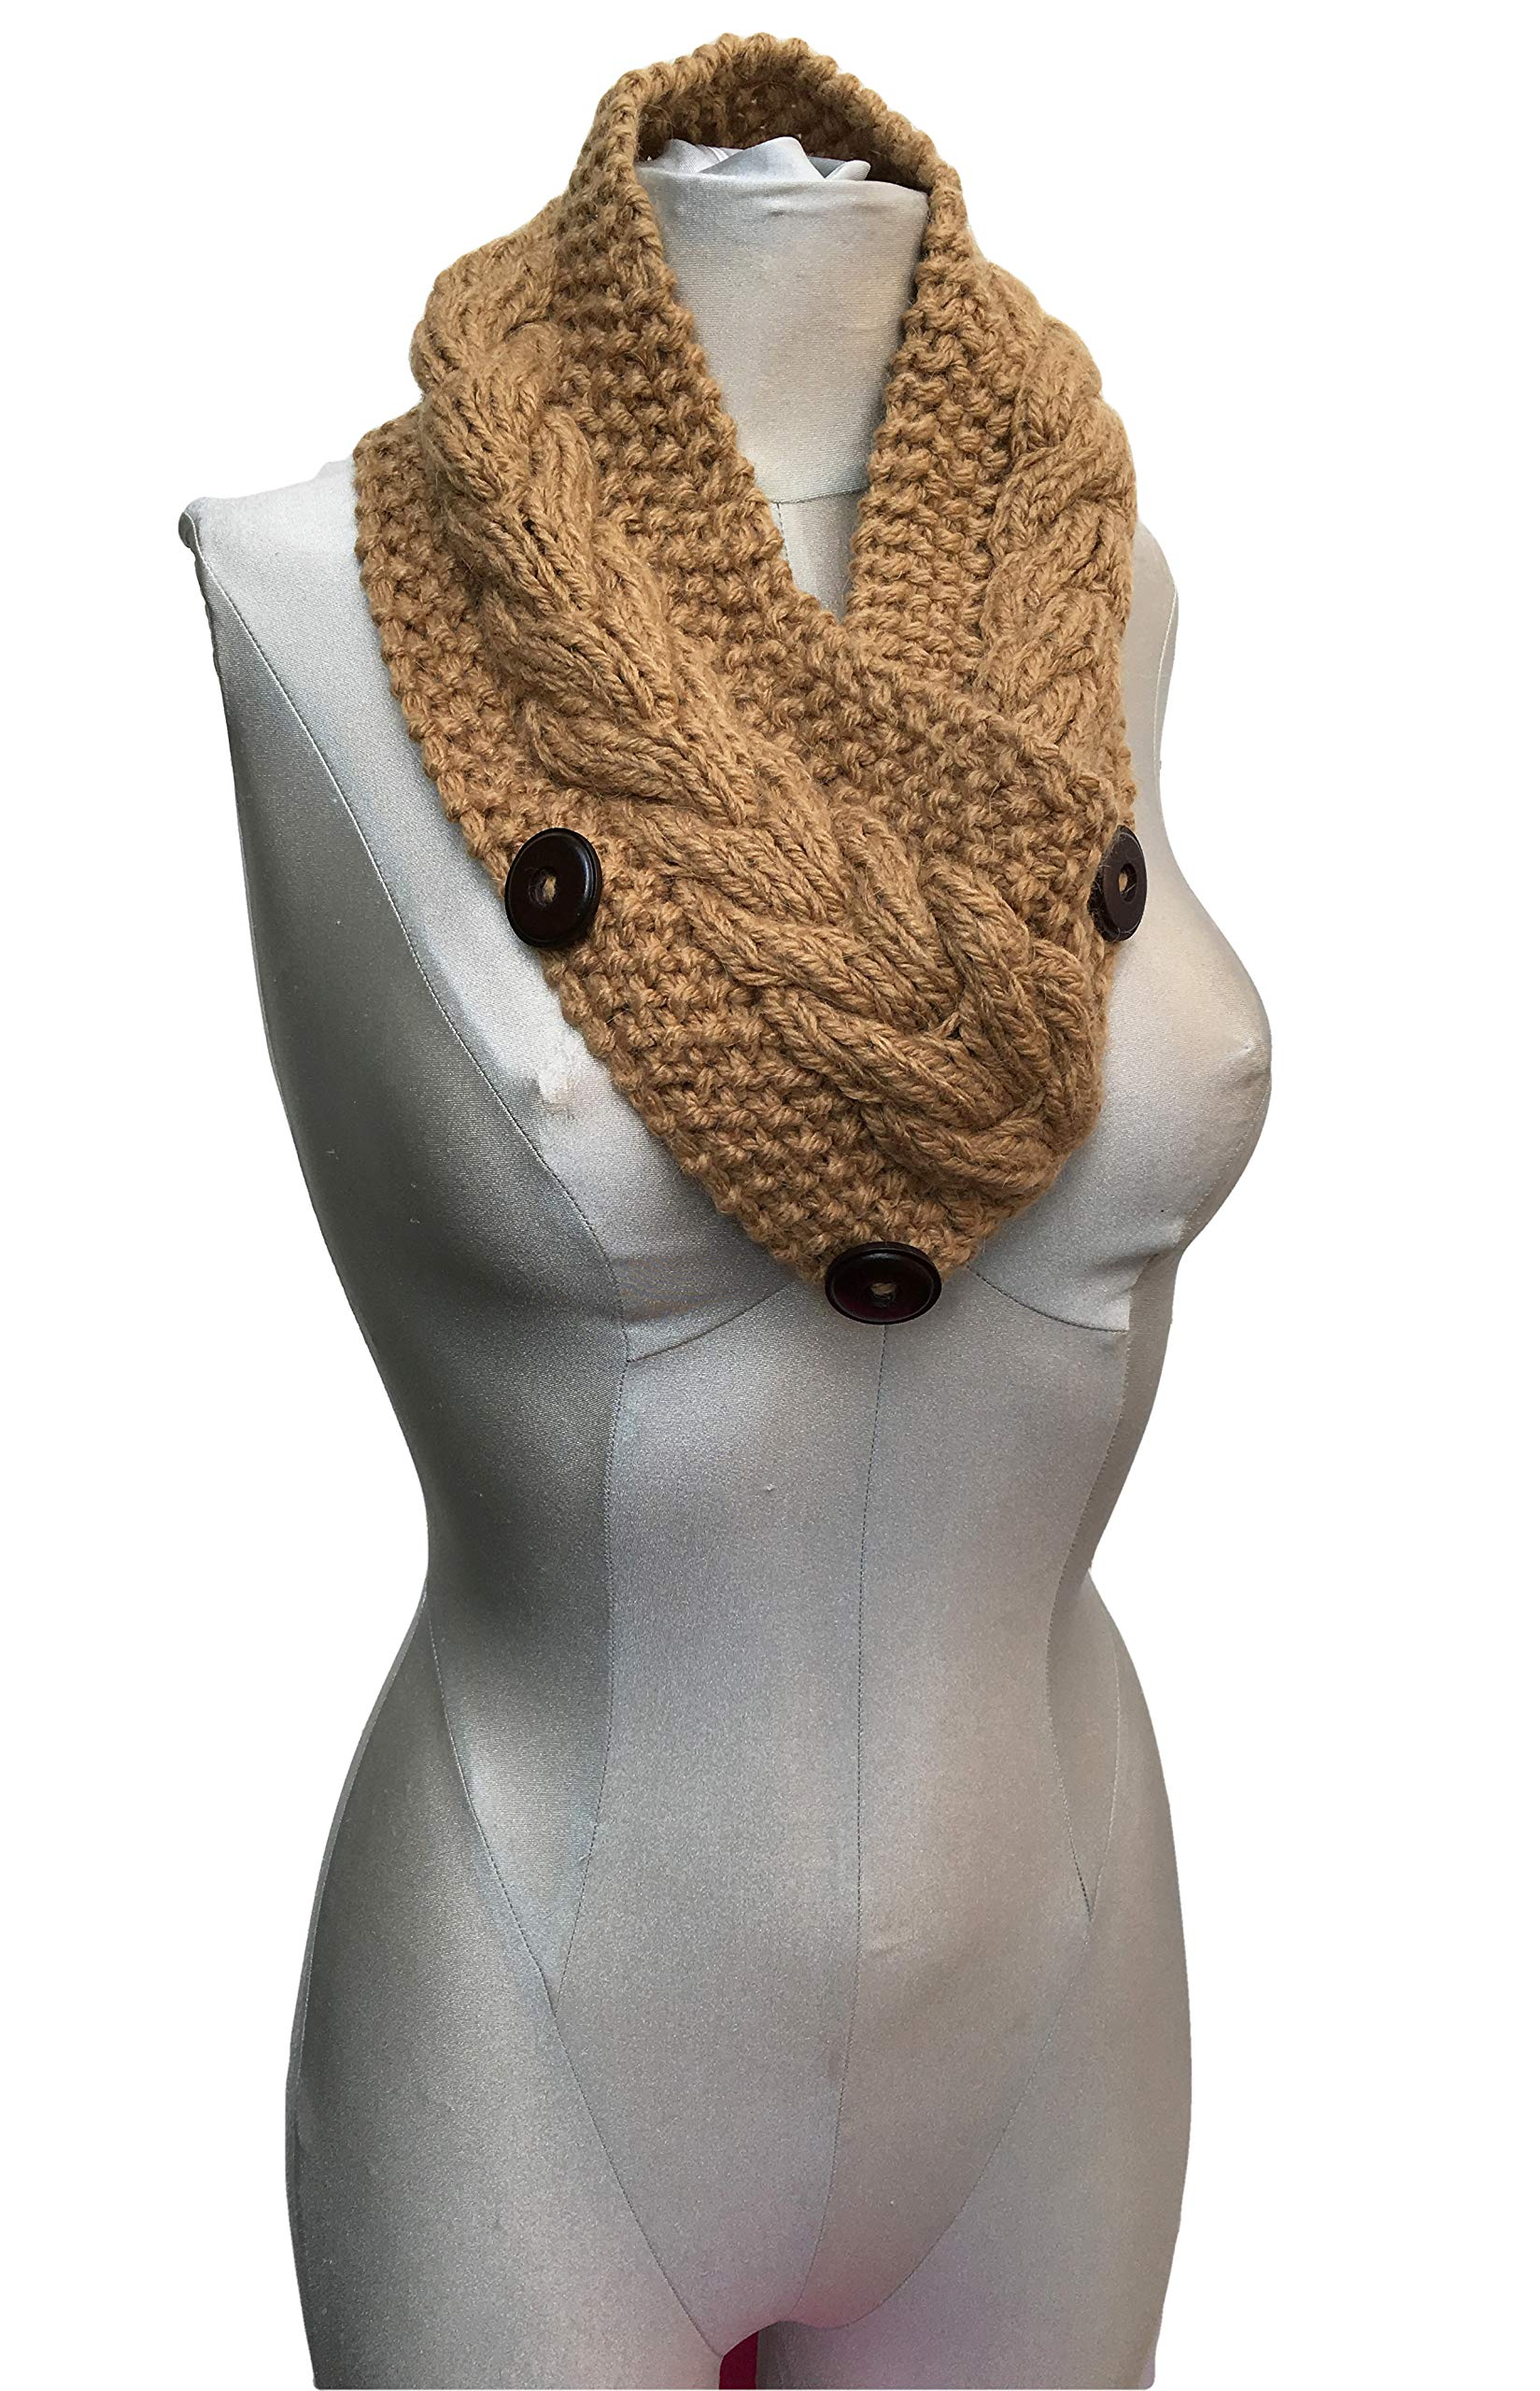 CUSTOM MADE - Alpaca and Wool Coziest Neckwarmer Ever (Knitted by Hand) (Strawberry Red)